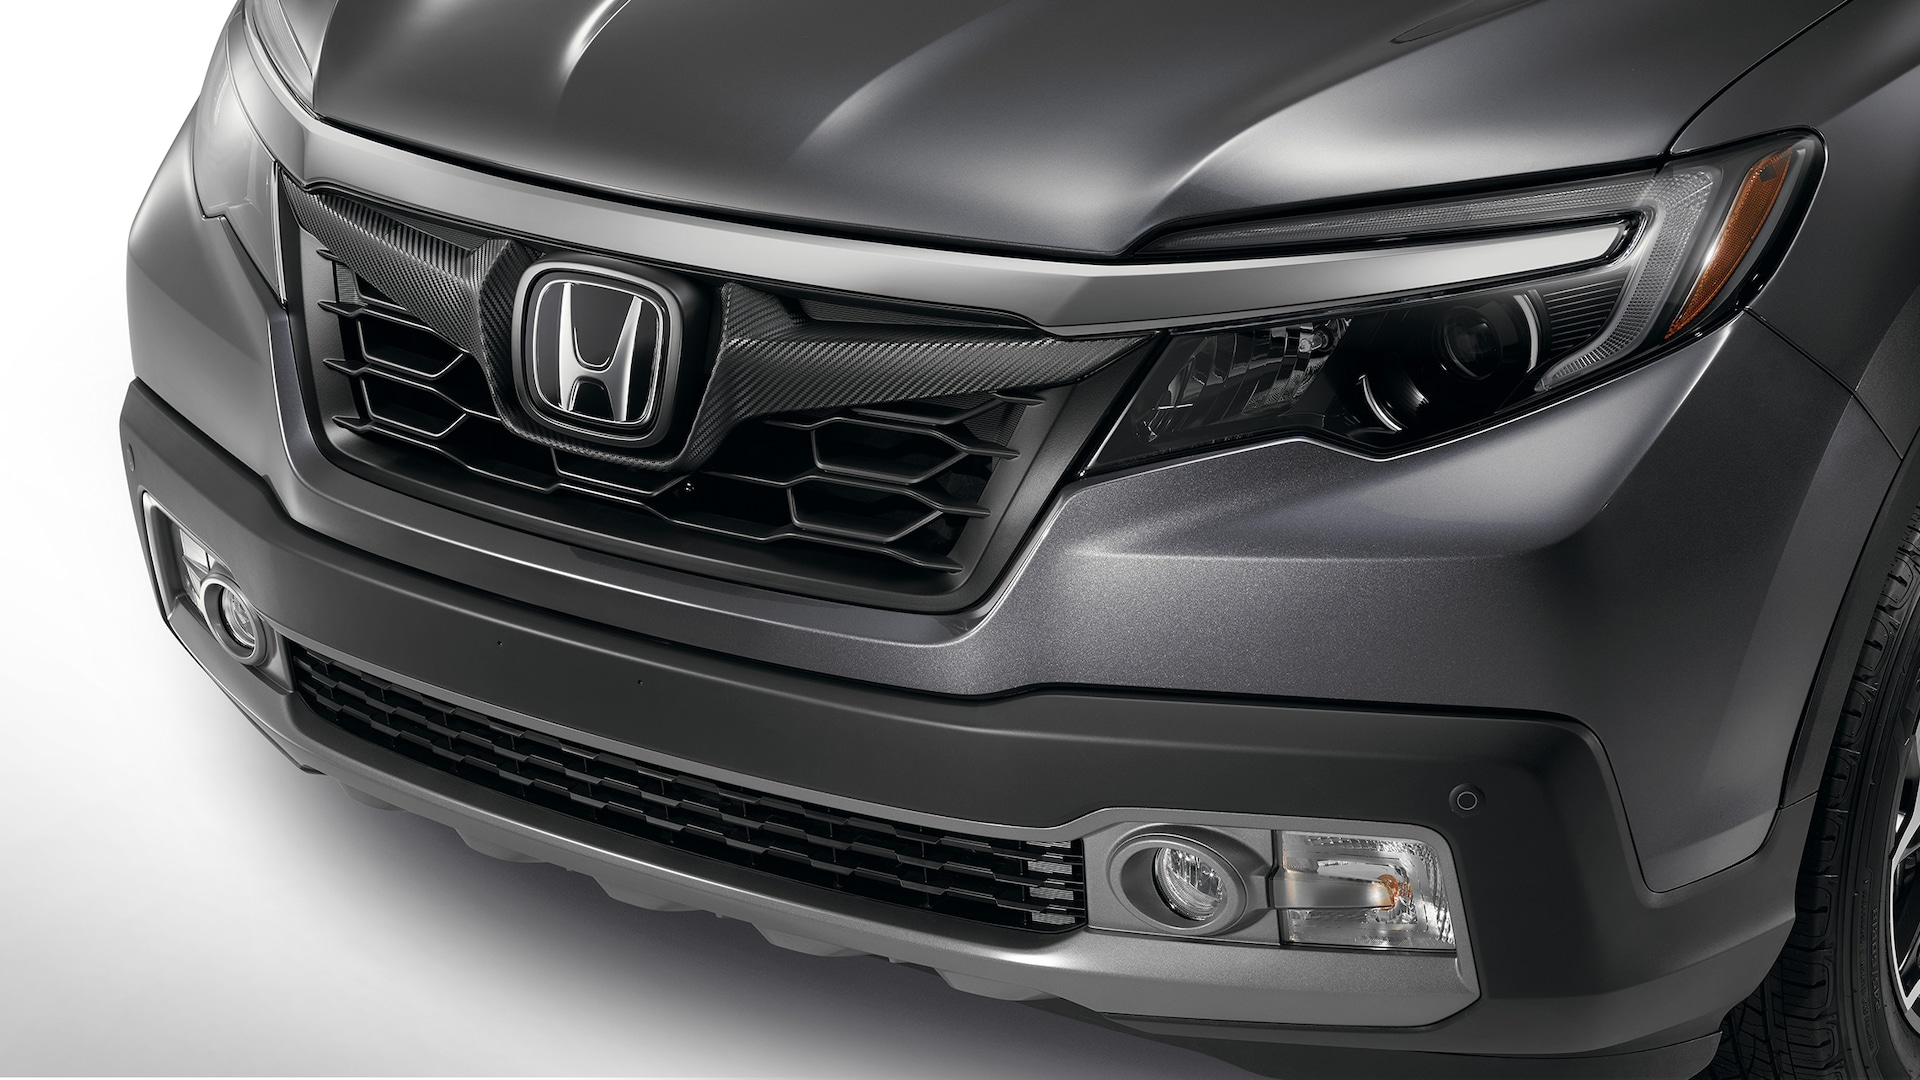 Sport grille detail on the 2020 Honda Ridgeline RTL-E in Modern Steel Metallic.